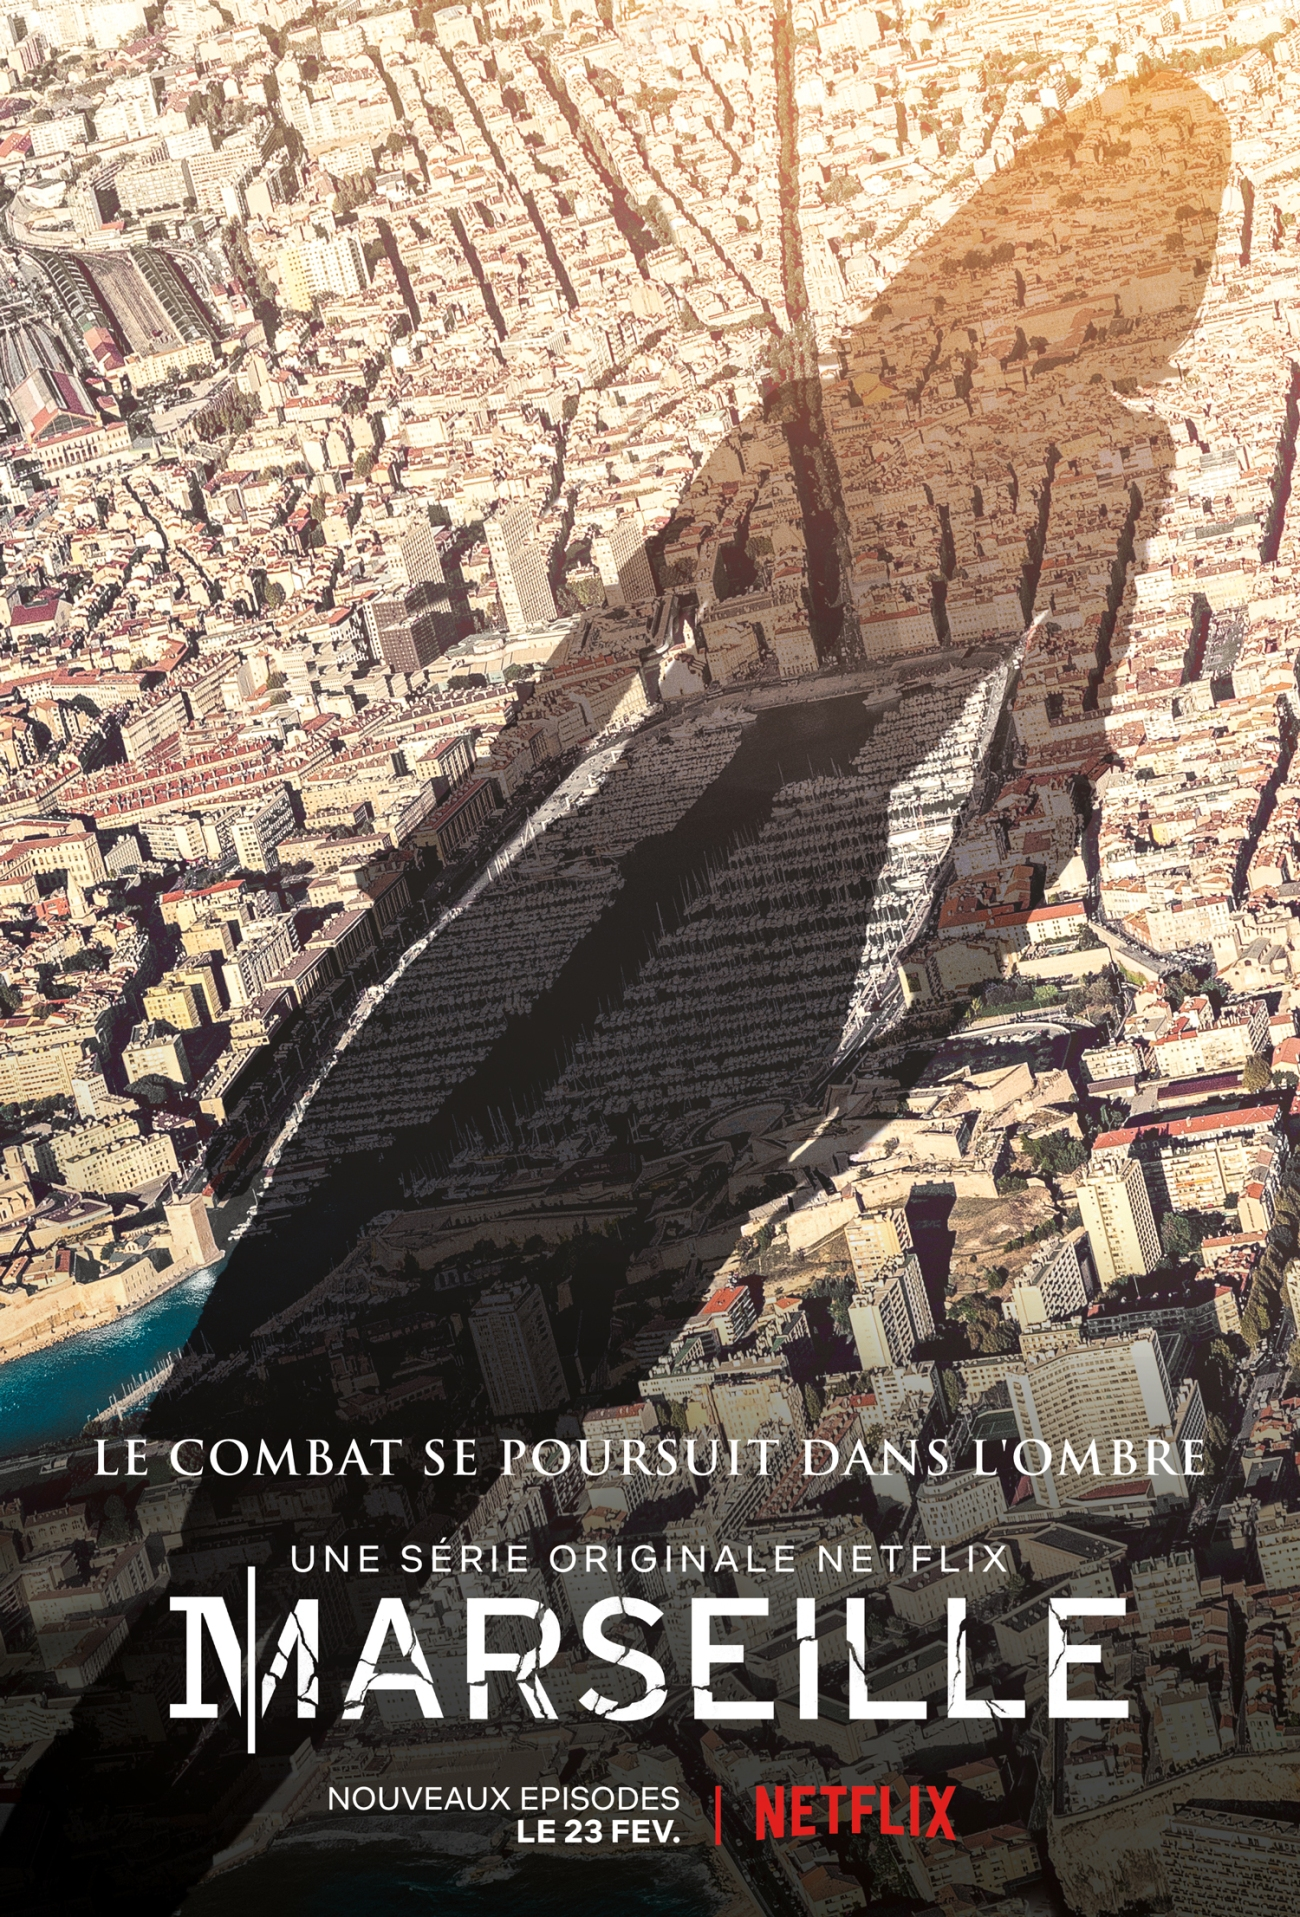 MARSEILLE KEY ART SAISON 2 CLIFF AND CO